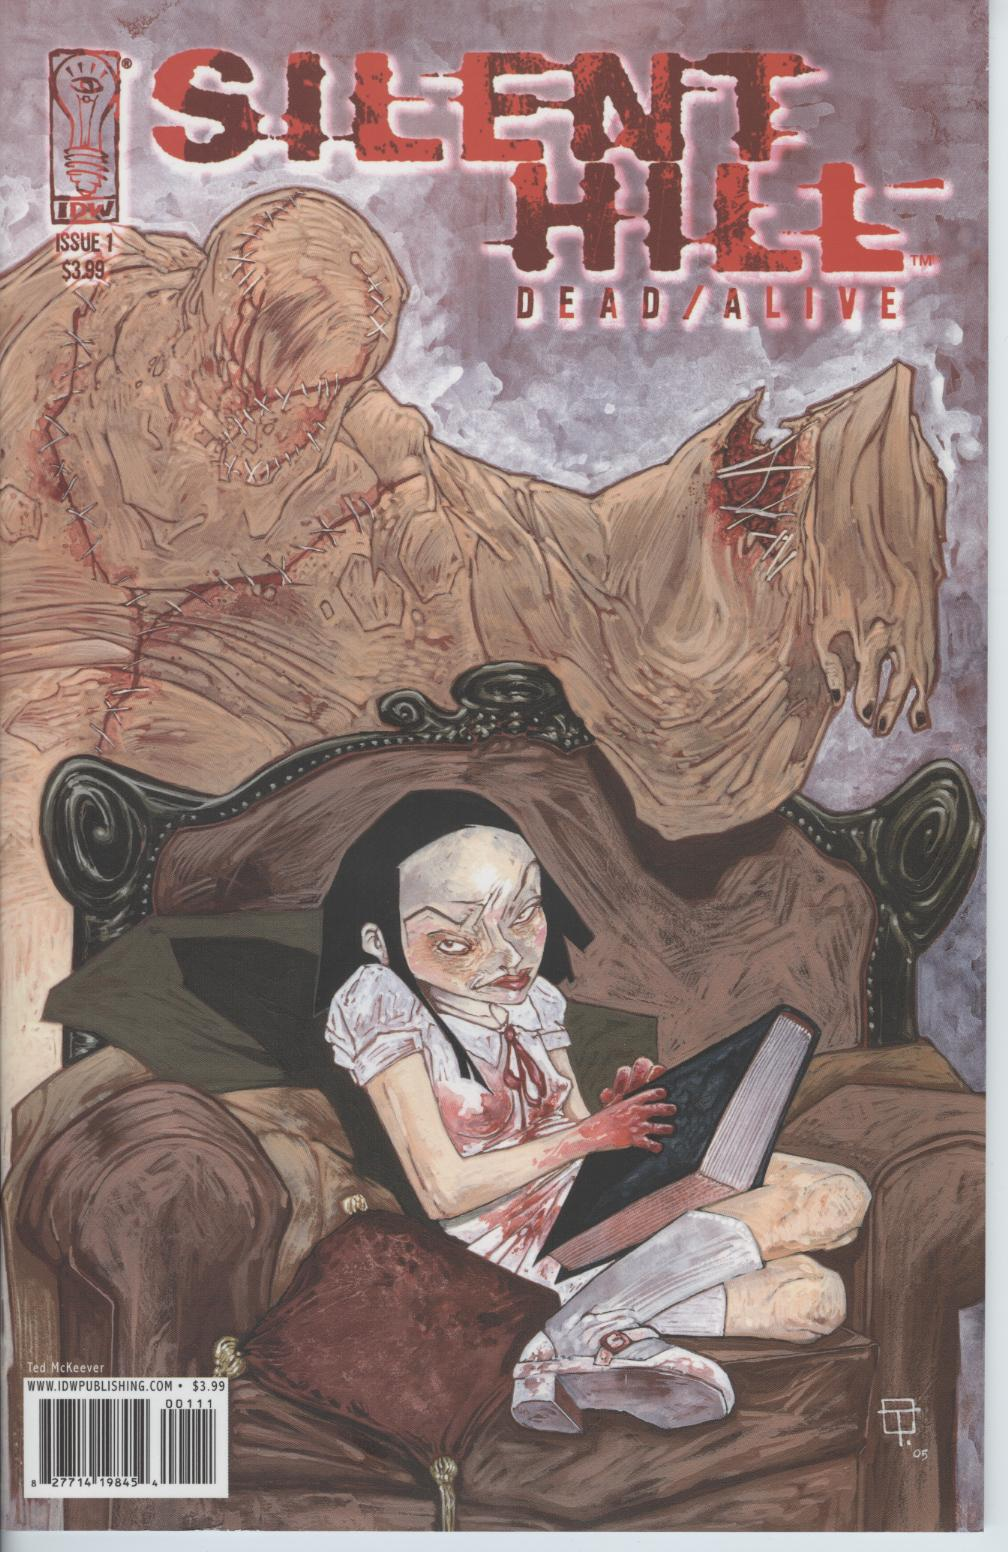 Read online Silent Hill: Dead/Alive comic -  Issue #1 - 1